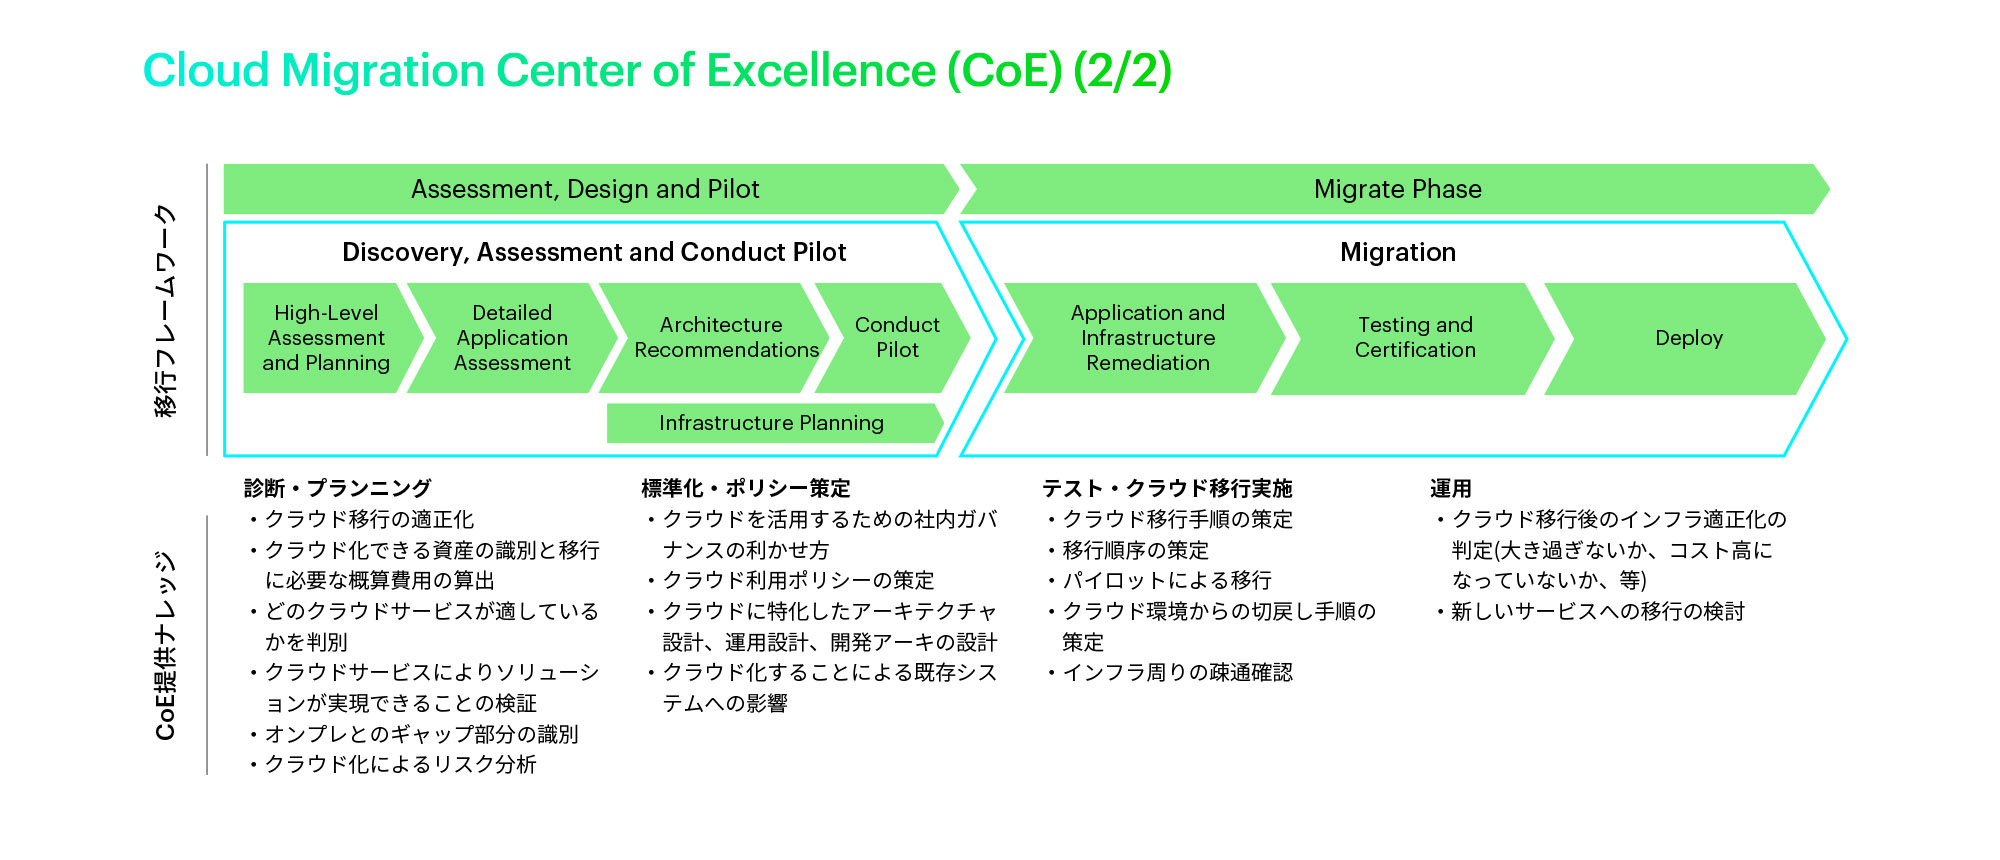 Cloud Migration Center of Excellence (CoE)(2/2)